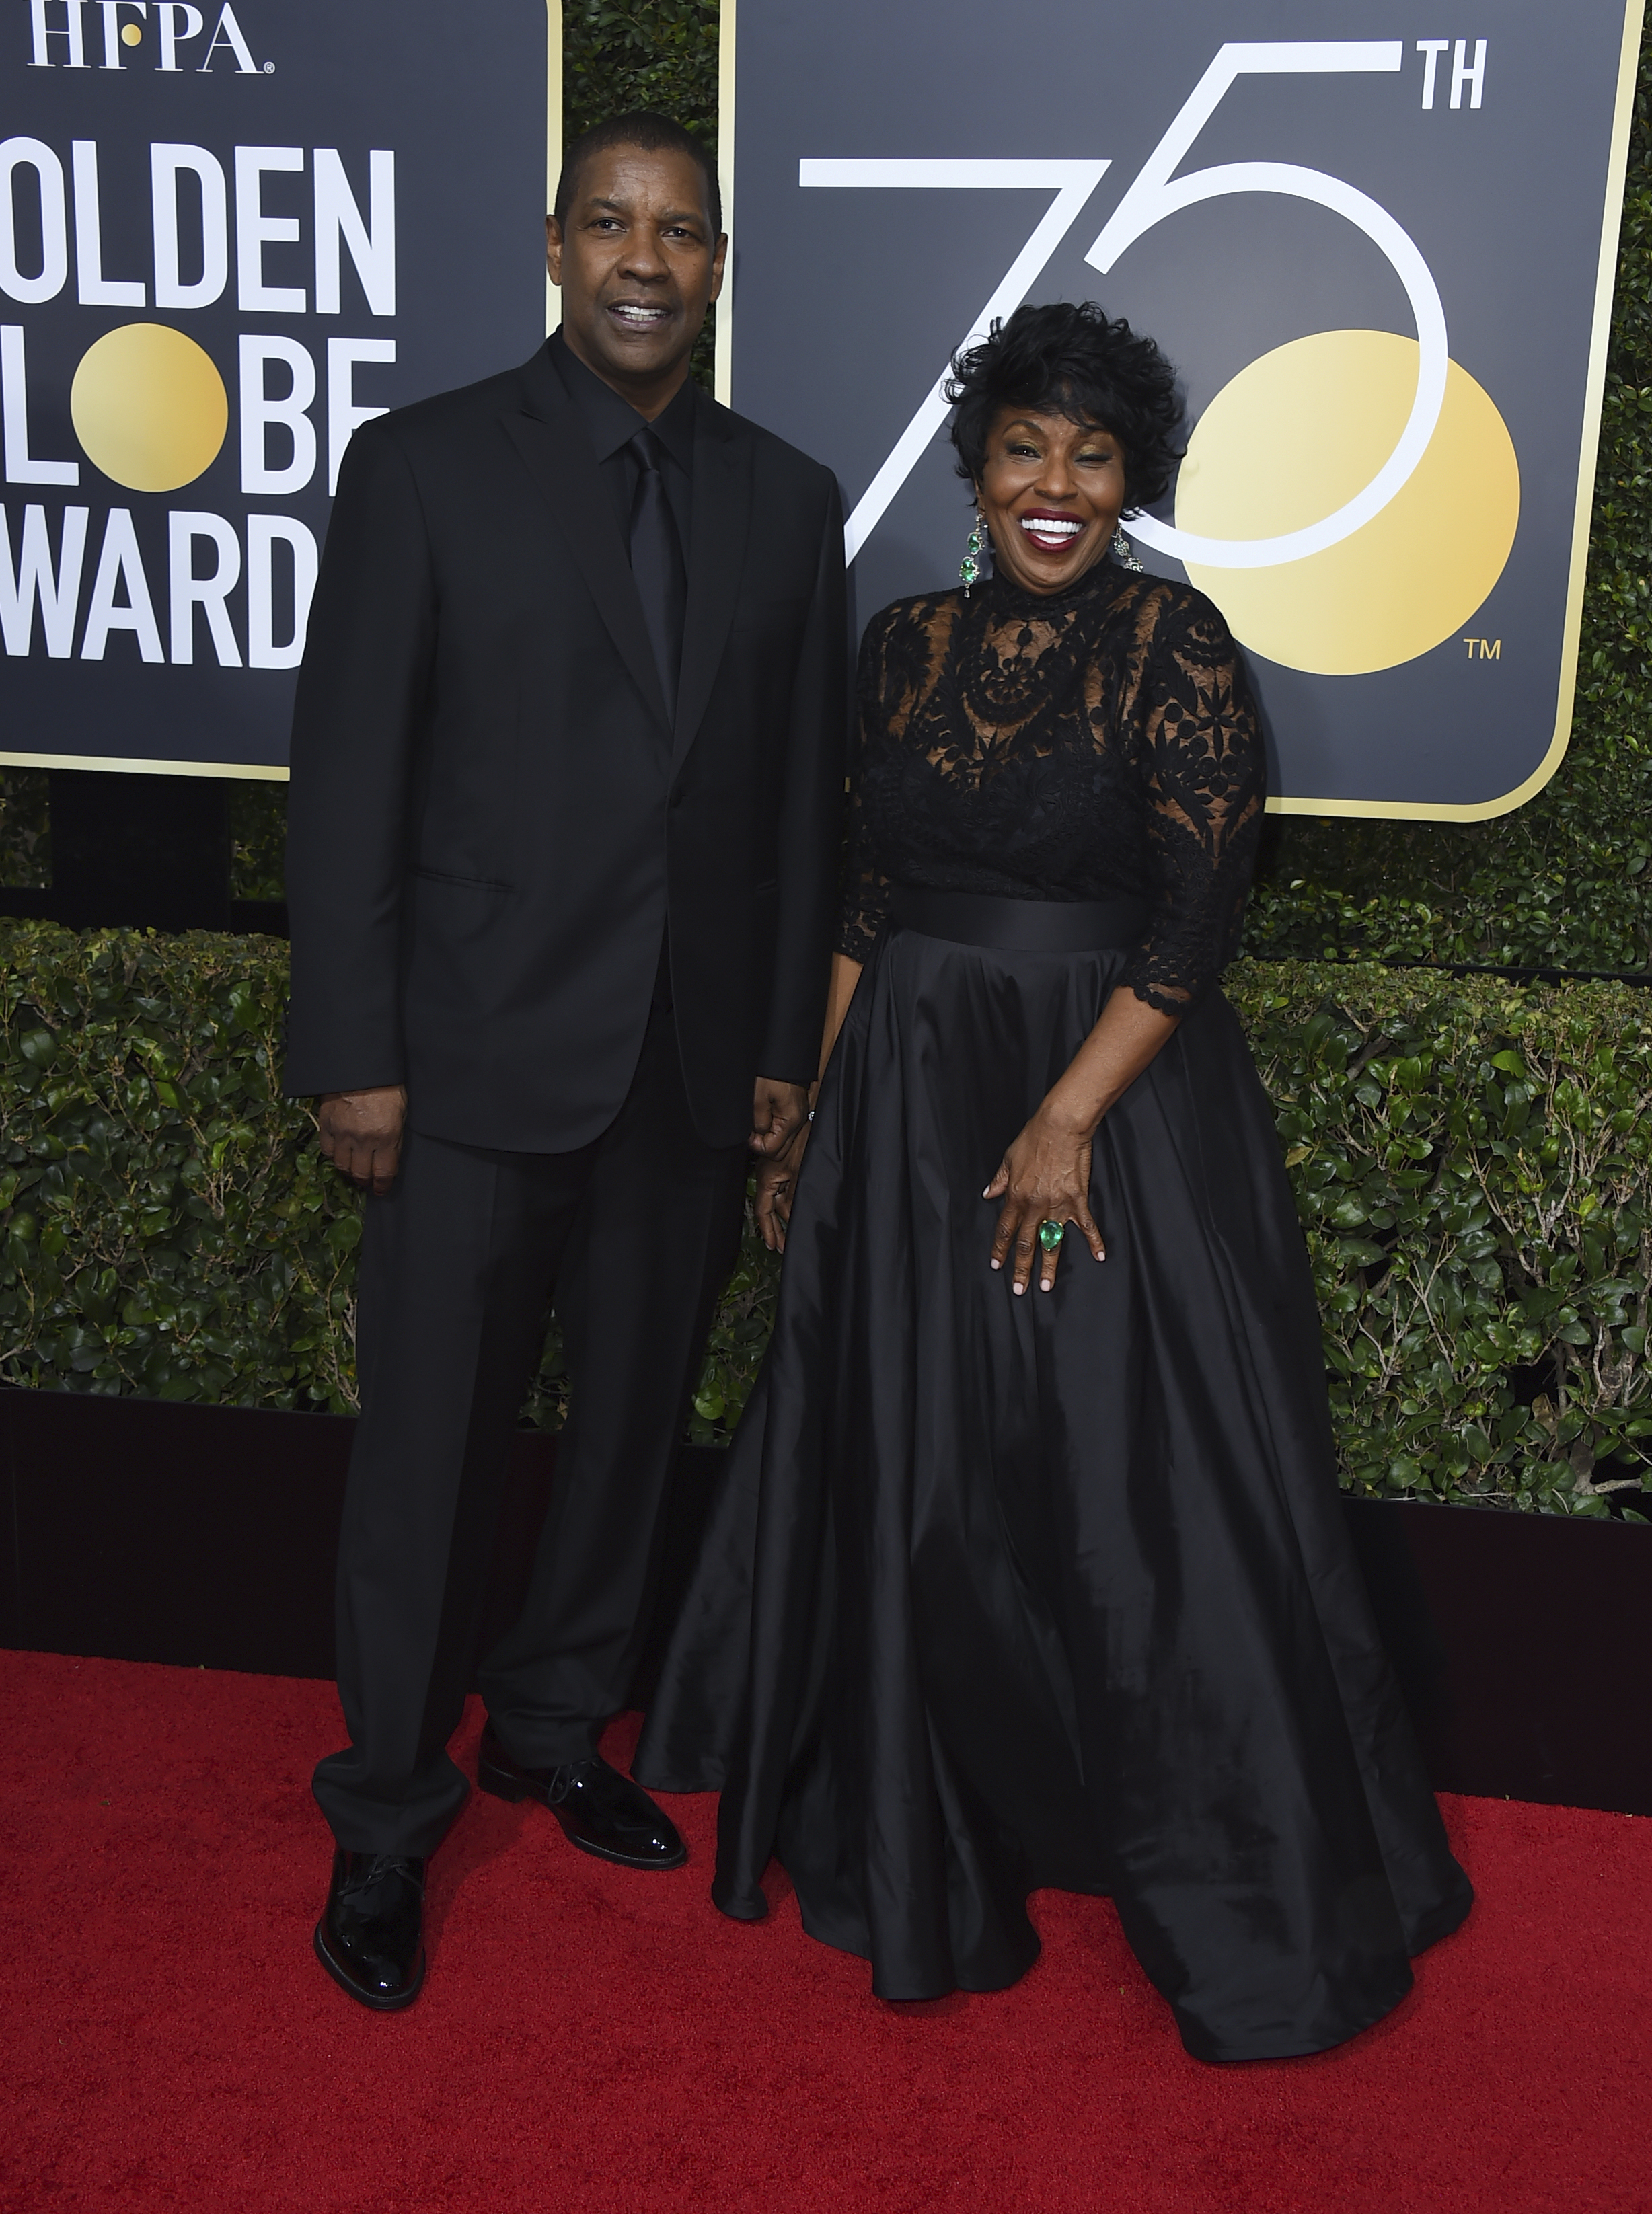 <div class='meta'><div class='origin-logo' data-origin='AP'></div><span class='caption-text' data-credit='Jordan Strauss/Invision/AP'>Denzel Washington, left, and Pauletta Washington arrive at the 75th annual Golden Globe Awards at the Beverly Hilton Hotel on Sunday, Jan. 7, 2018, in Beverly Hills, Calif.</span></div>